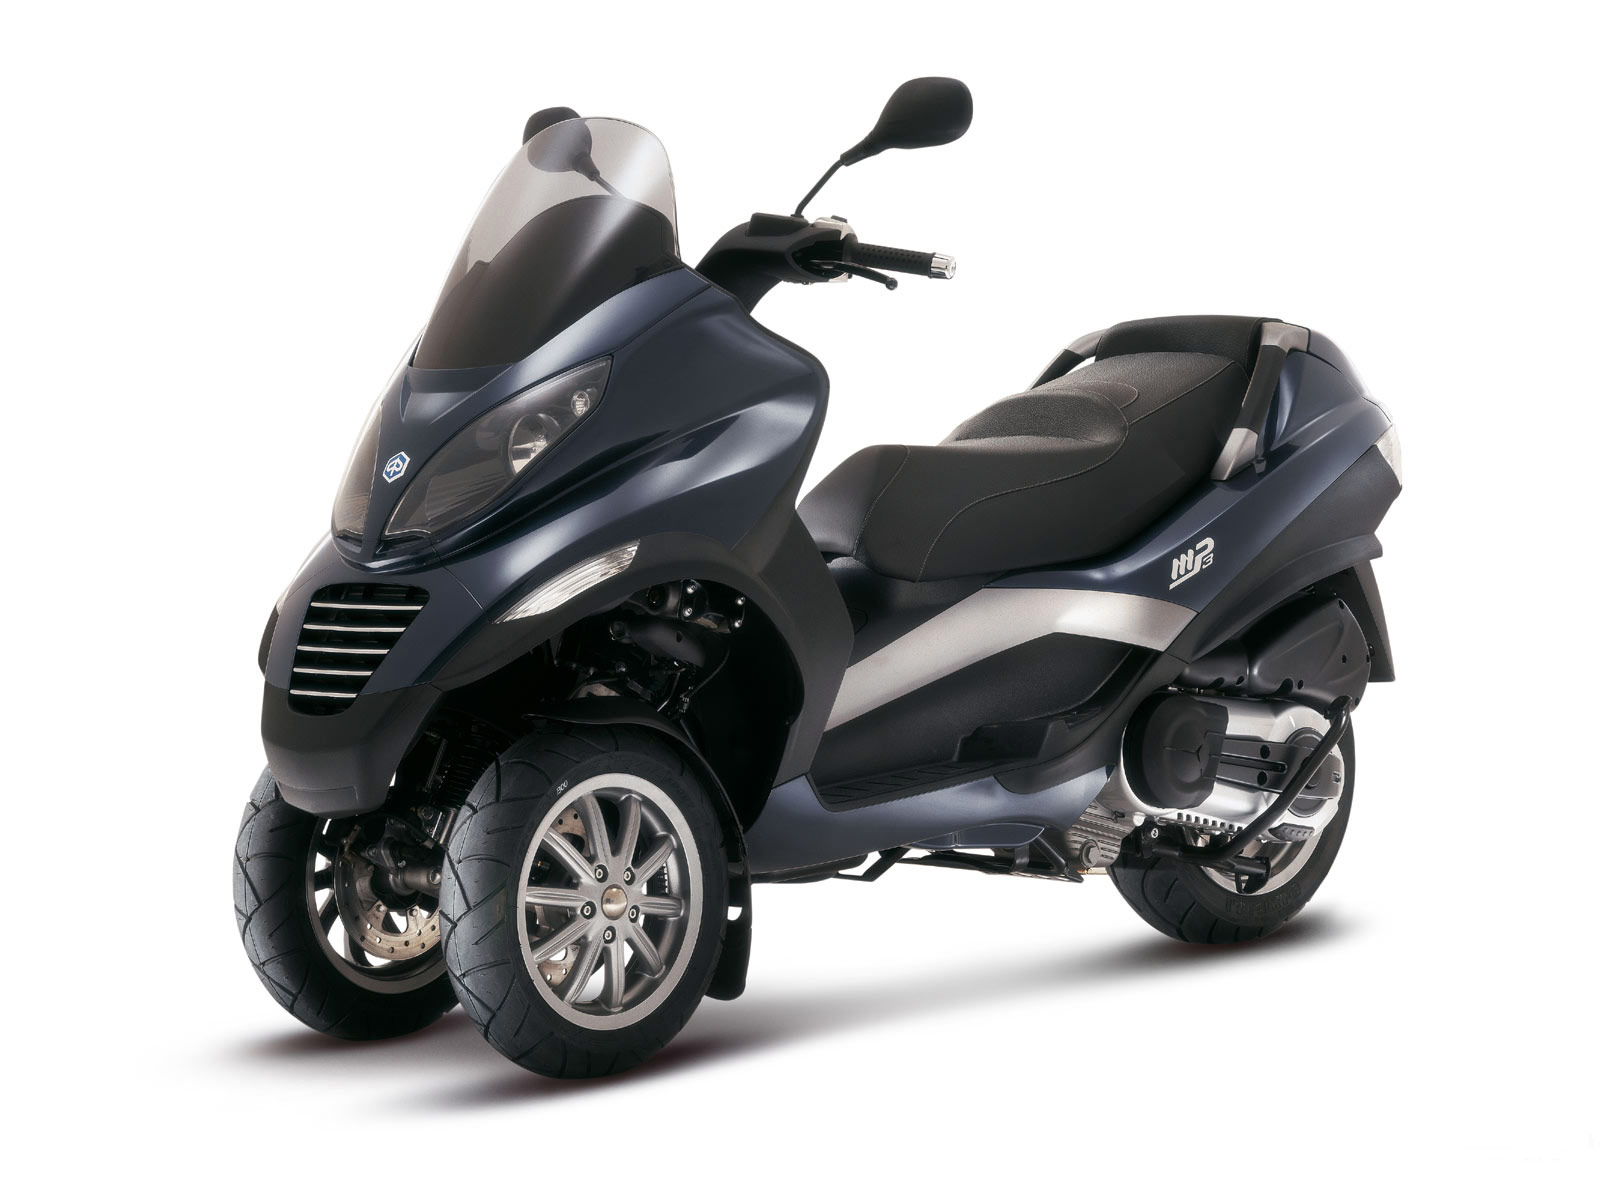 Piaggio Ie Scooter Pictures